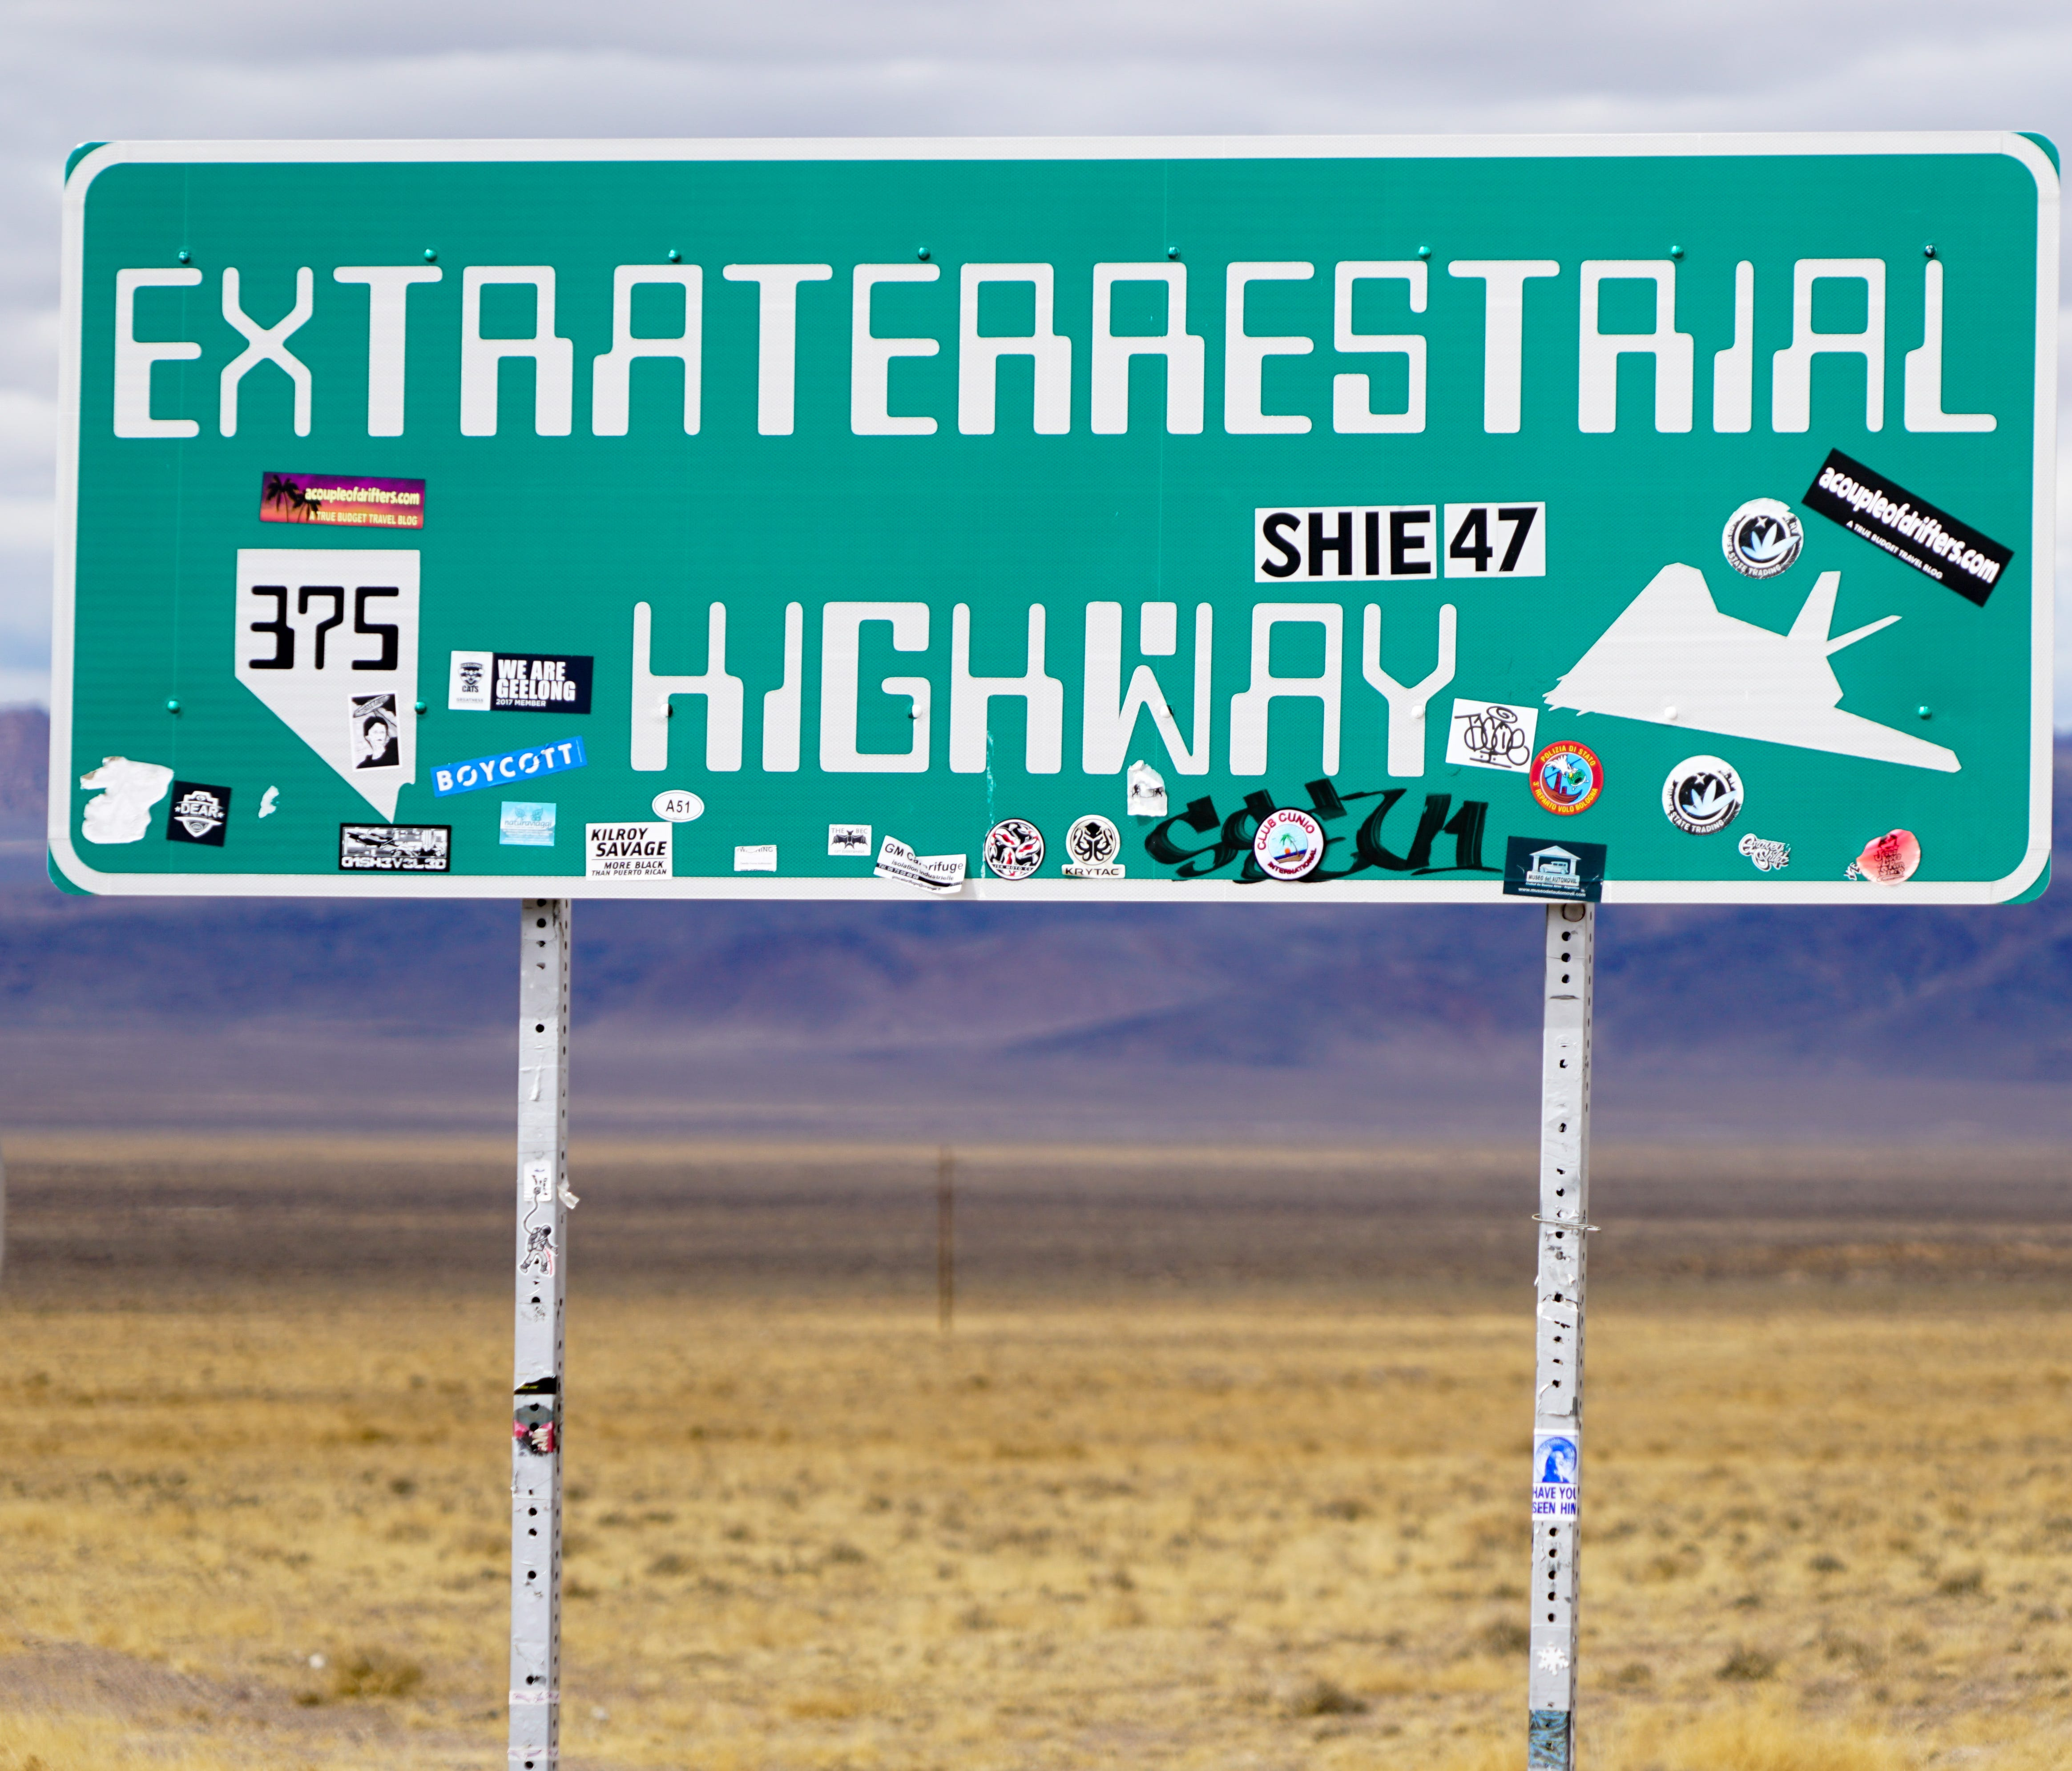 Nevada's Extraterrestrial Highway draws visitors from around the world (and maybe from other ones too!) to check out Area 51.